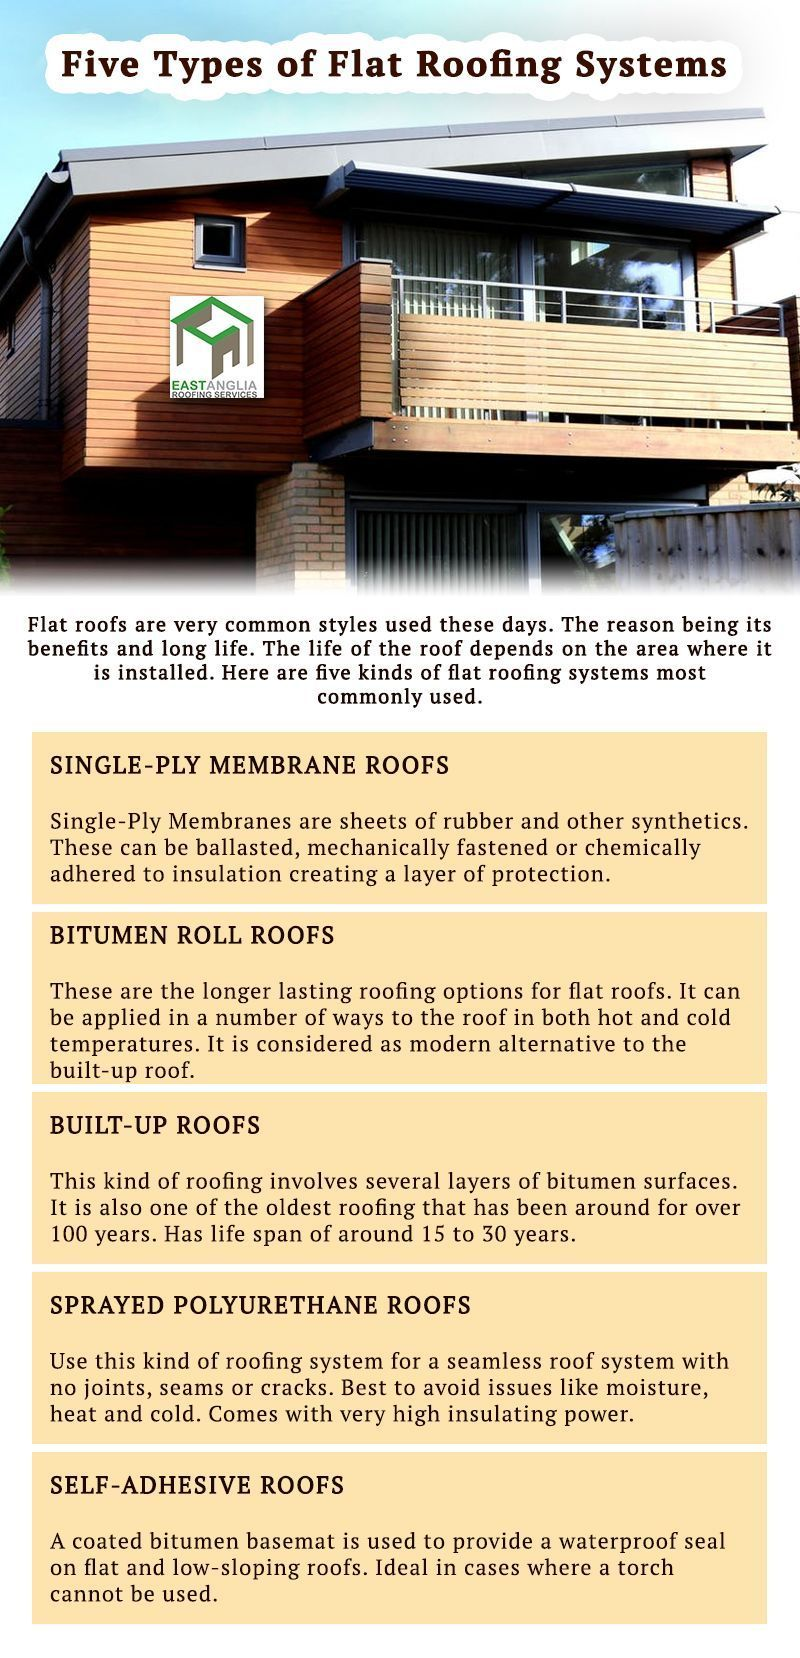 Why Architectural Shingles Are Considered The Ideal Roofing Material Roofing Materials Diy In 2020 Roofing Modern Roofing Fibreglass Roof